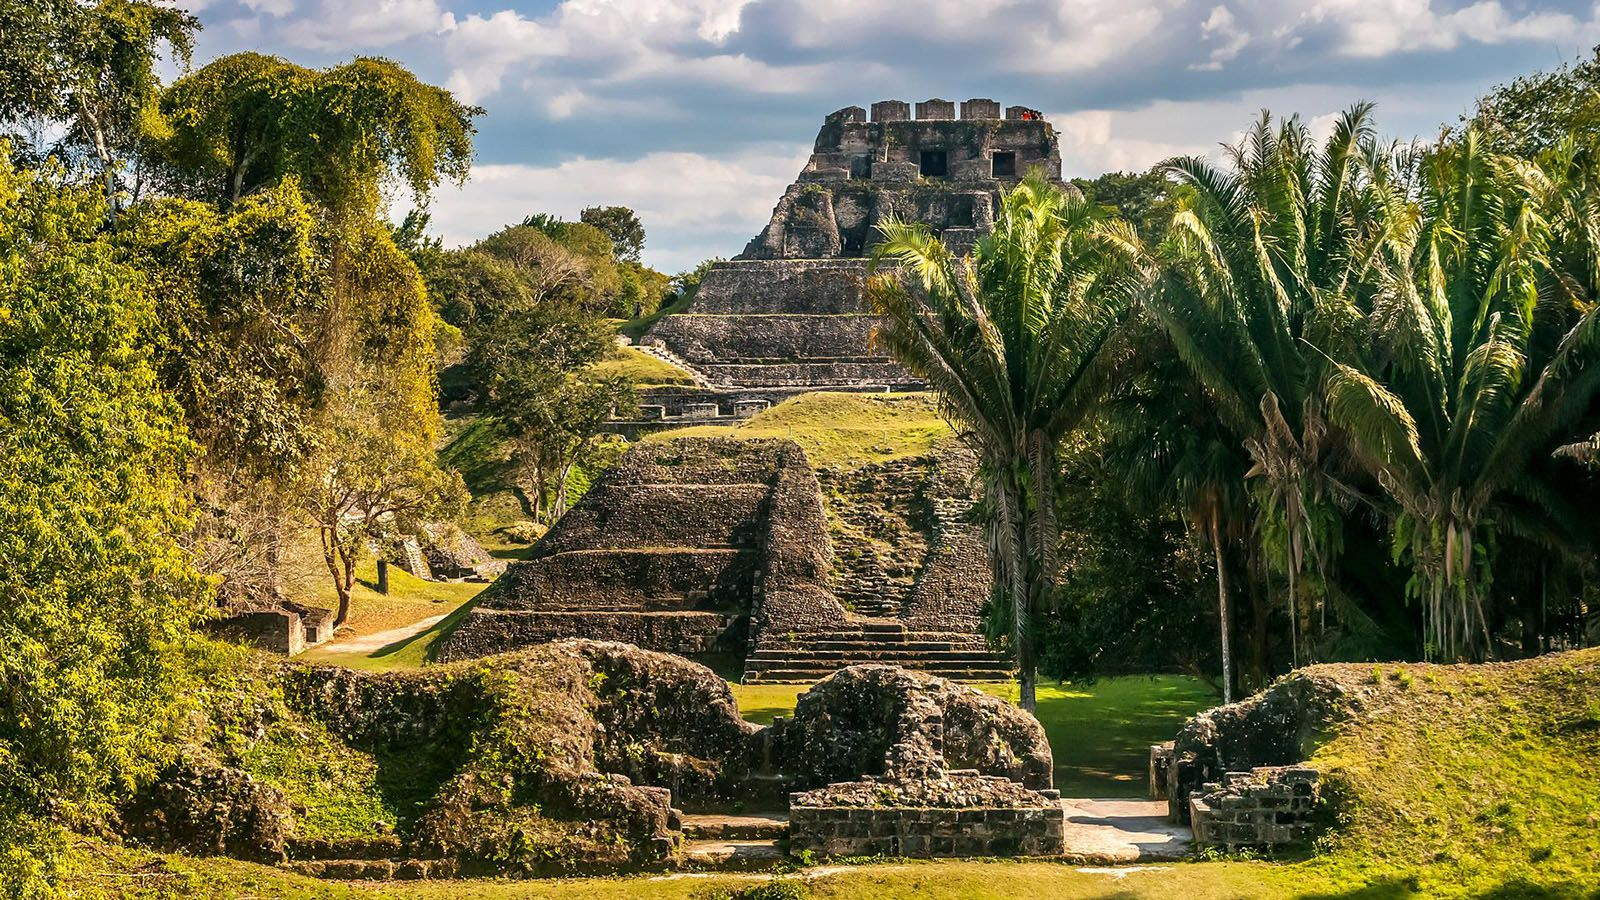 H ISTORY  Containing 9 known archaeological sites, the Property has an intriguing and mysterious past. Find out more here.